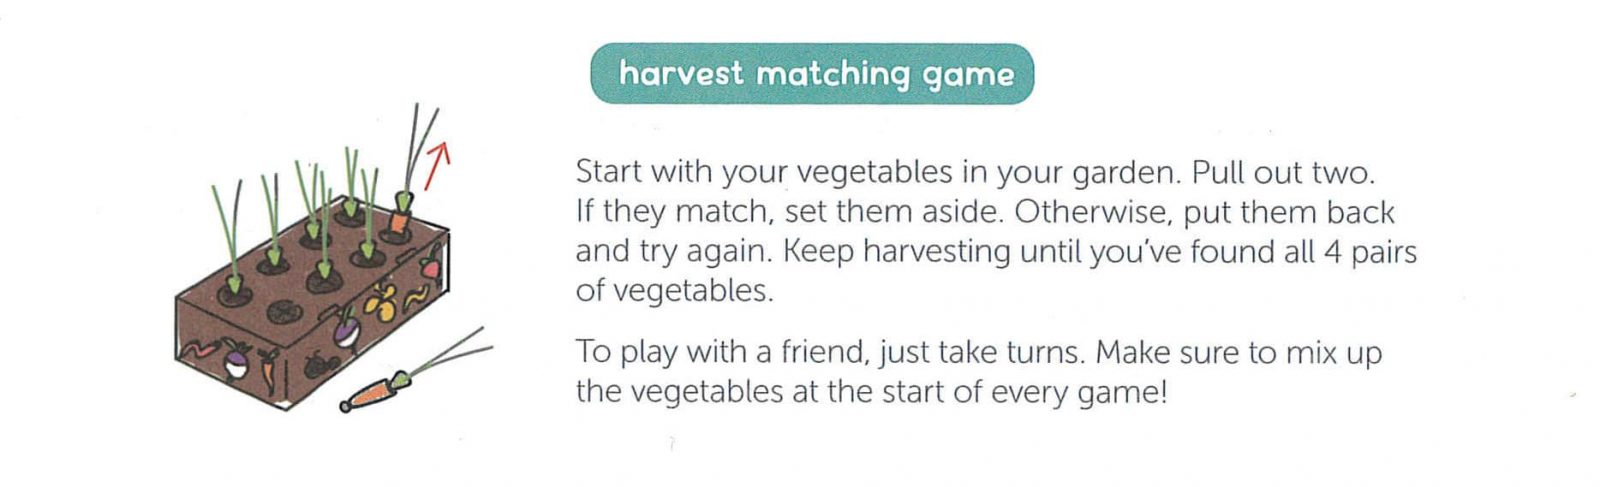 Harvest Matching Game instructions - Koala Crate